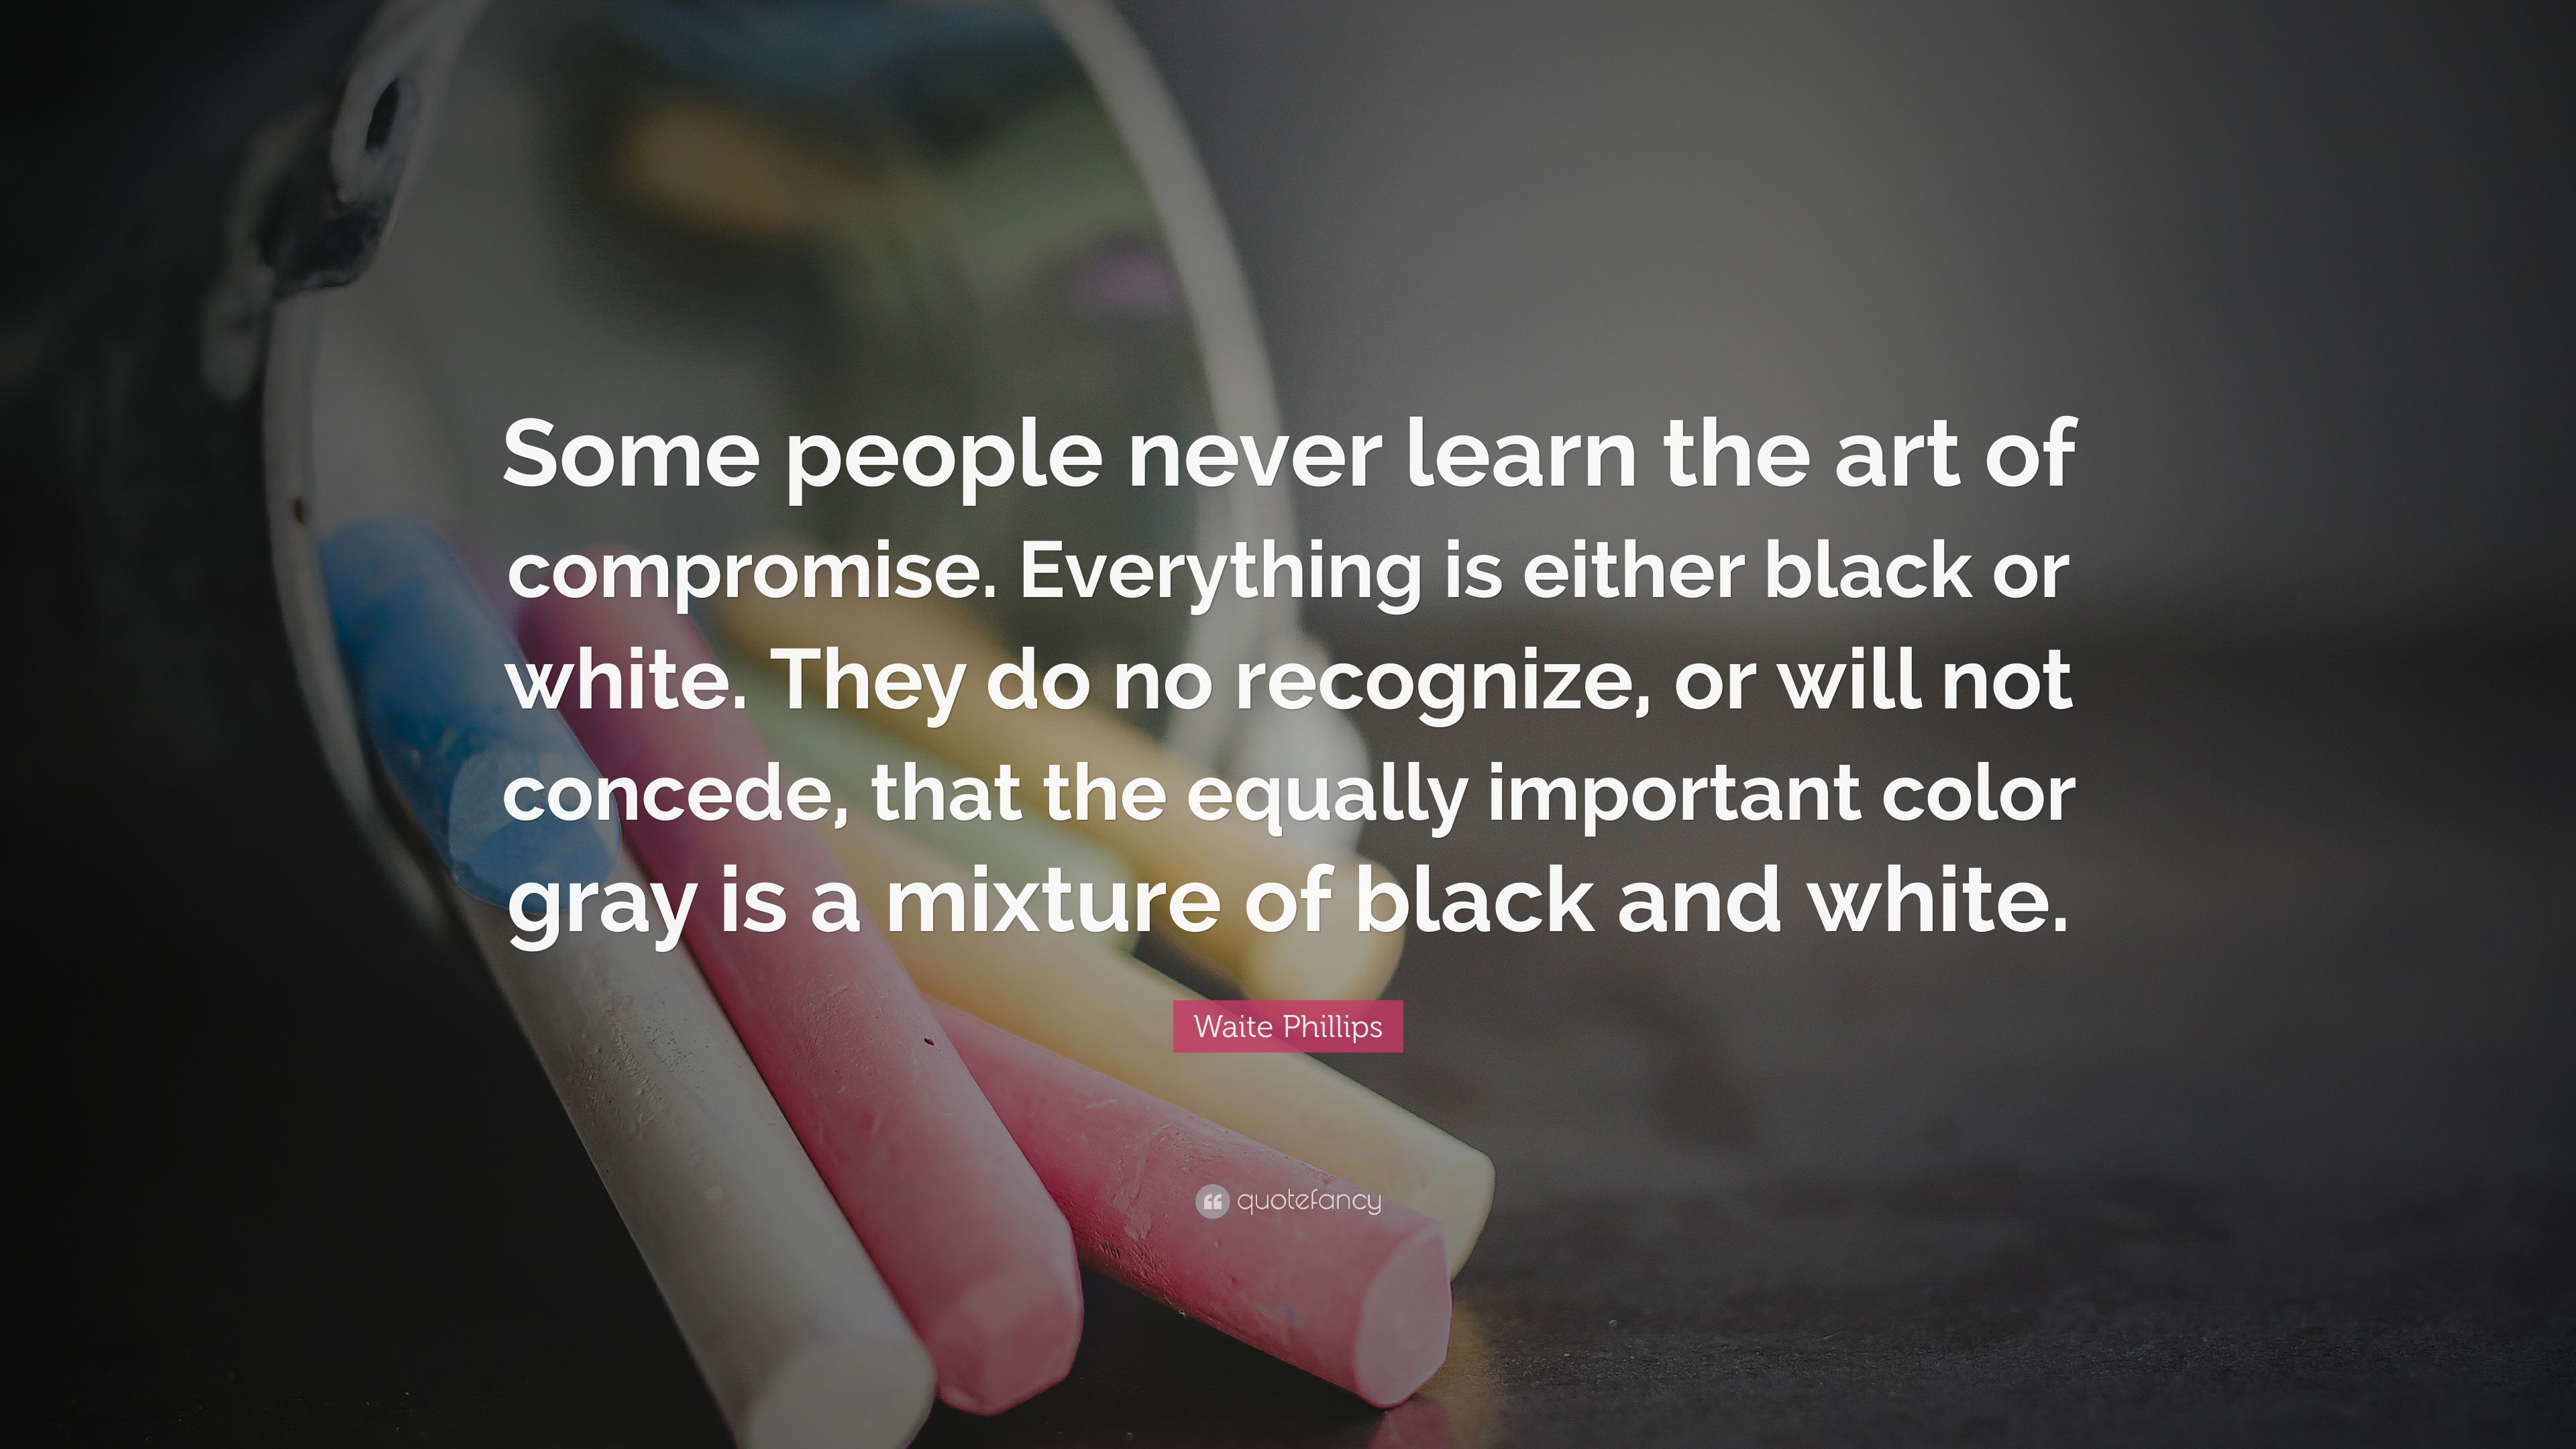 Black And White Motivational Quotes Wallpaper Waite Phillips Quote Some People Never Learn The Art Of